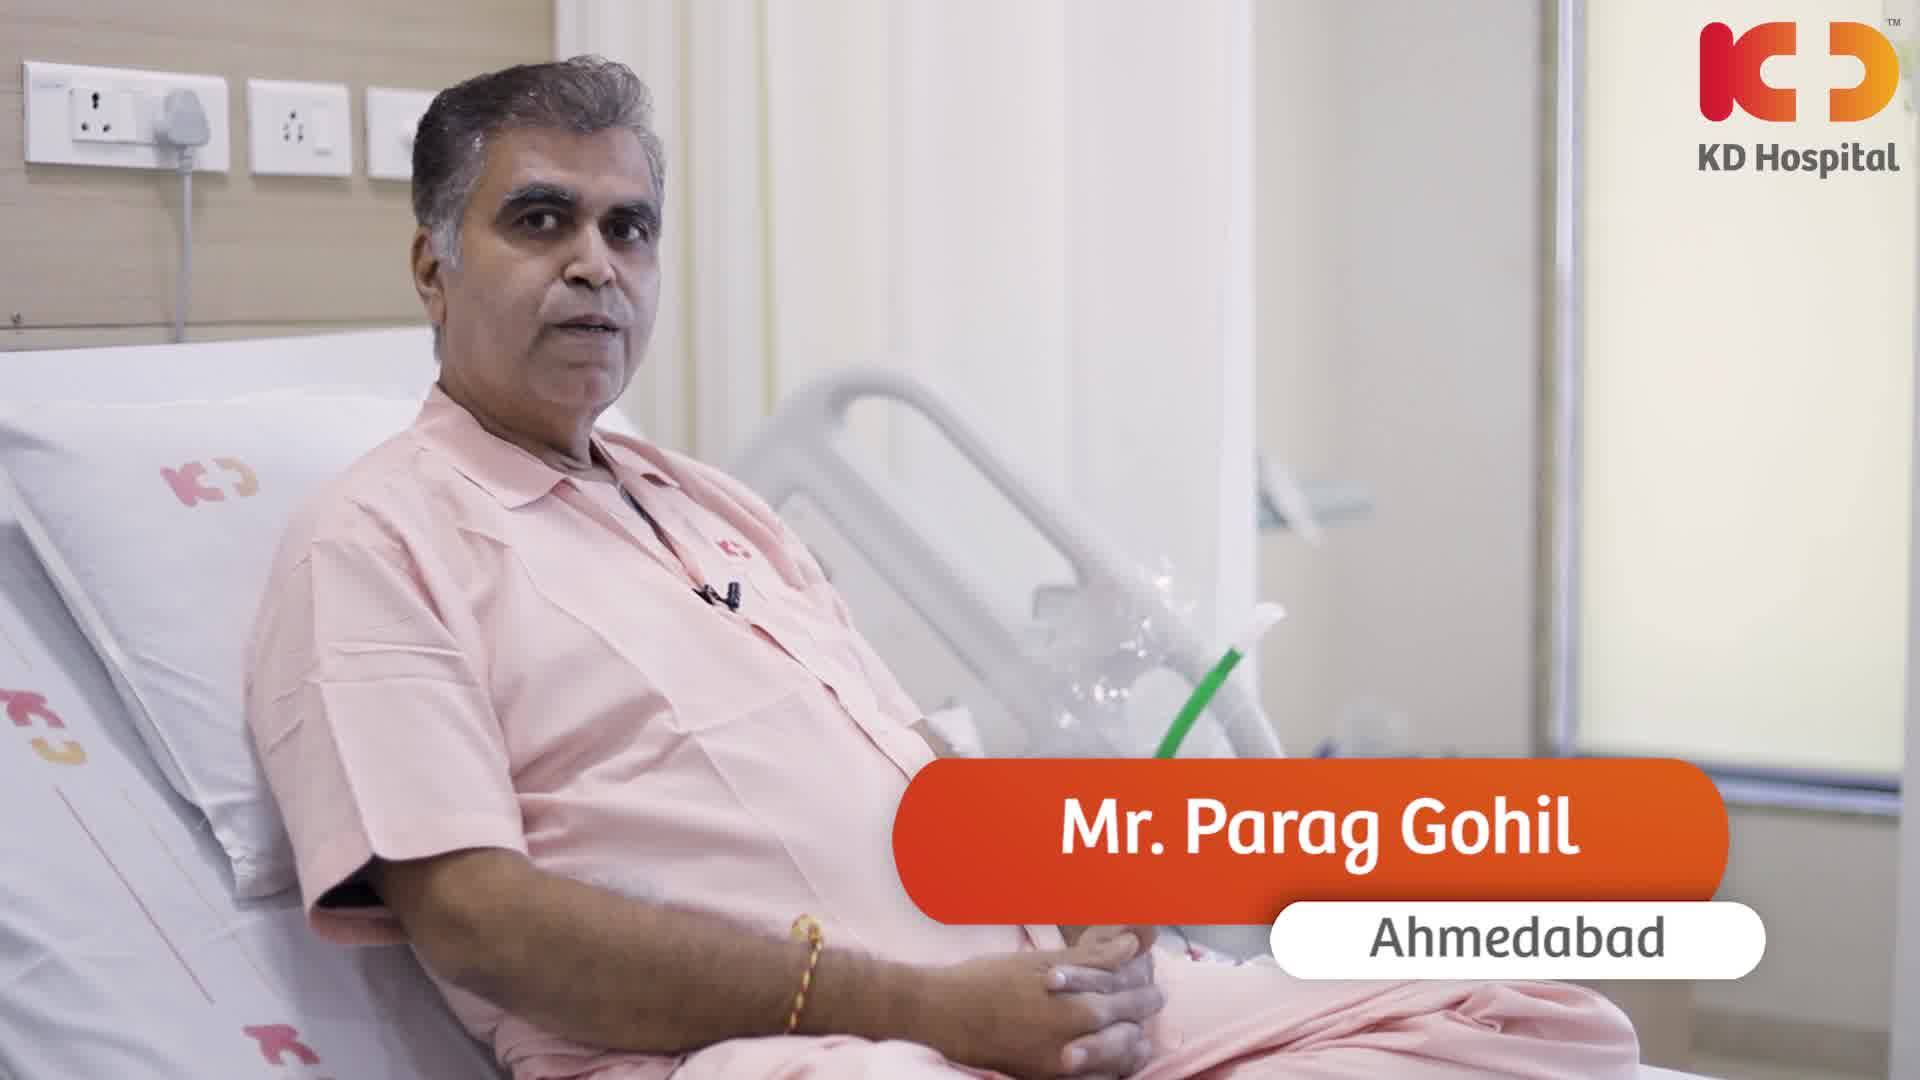 Introducing Post CoviD Ailment Program (P CAP)wherein we continue to live on our values to deliver Compassionate Care. Let's hear it from our patient Shri Paragji Gohil. For appointments call 07966770000.  #KDHospital #helpinghands #postcovid #postcovidailmentprogram #COVID19 #PostCOVIDRecovery  #postcovid19 #NewNormal #BestHospitalInIndia #NABHHospital #QualityCare #hospitals #doctors #healthcare #CovidVaccine #medical #health #hospital #medicine #coronavirus #staysafe #wellnessthatworks #Ahmedabad #Gujarat #india